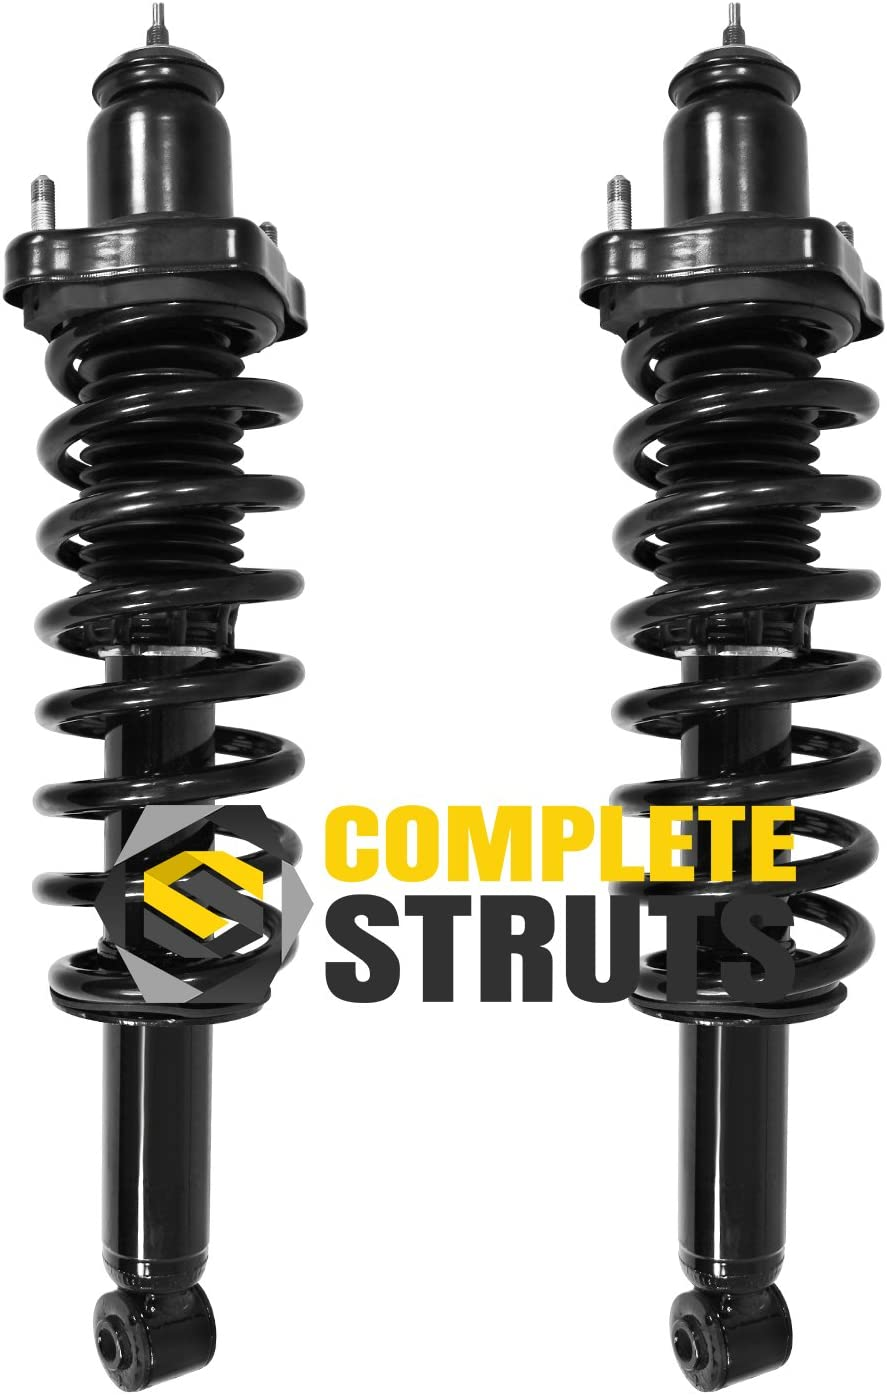 Pair Rear Quick Complete Struts /& Coil Spring Assemblies Compatible with 2007-2012 Dodge Caliber